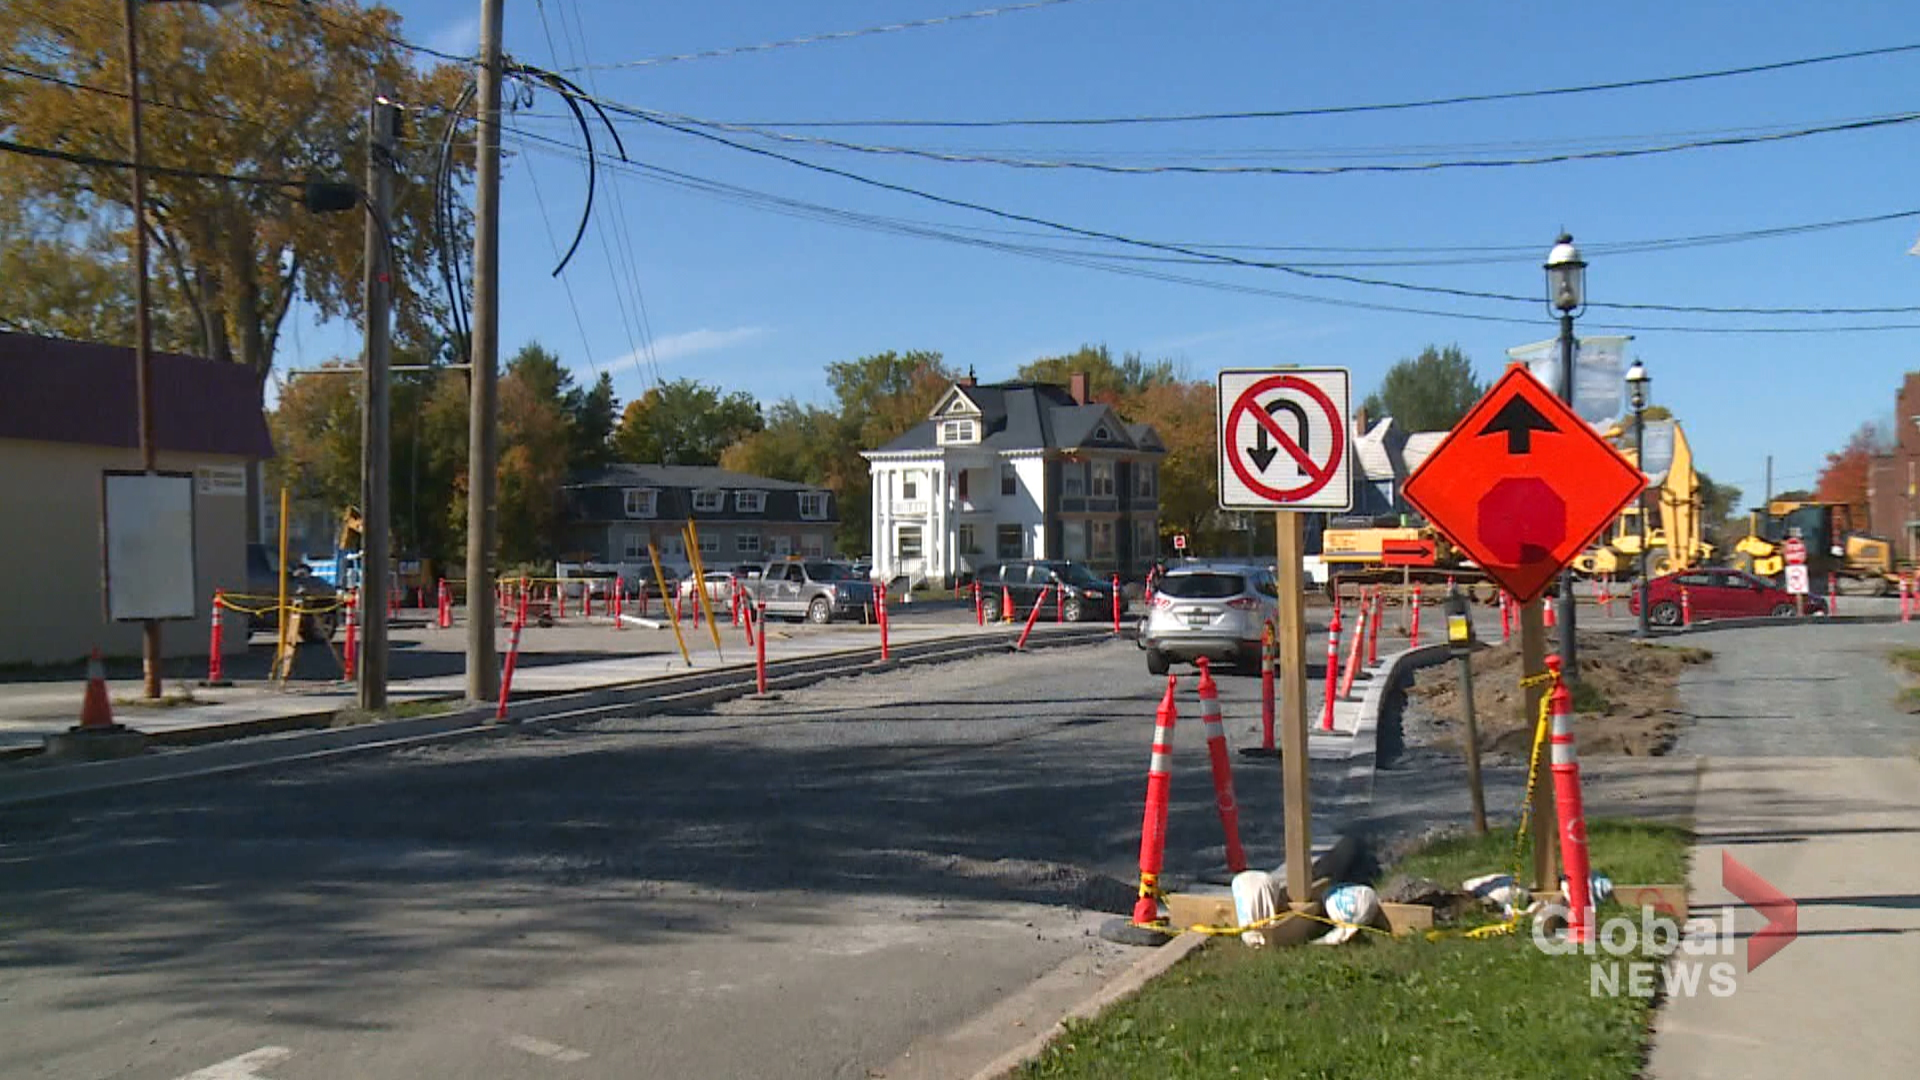 City of Fredericton planning to inform businesses of upcoming construction projects